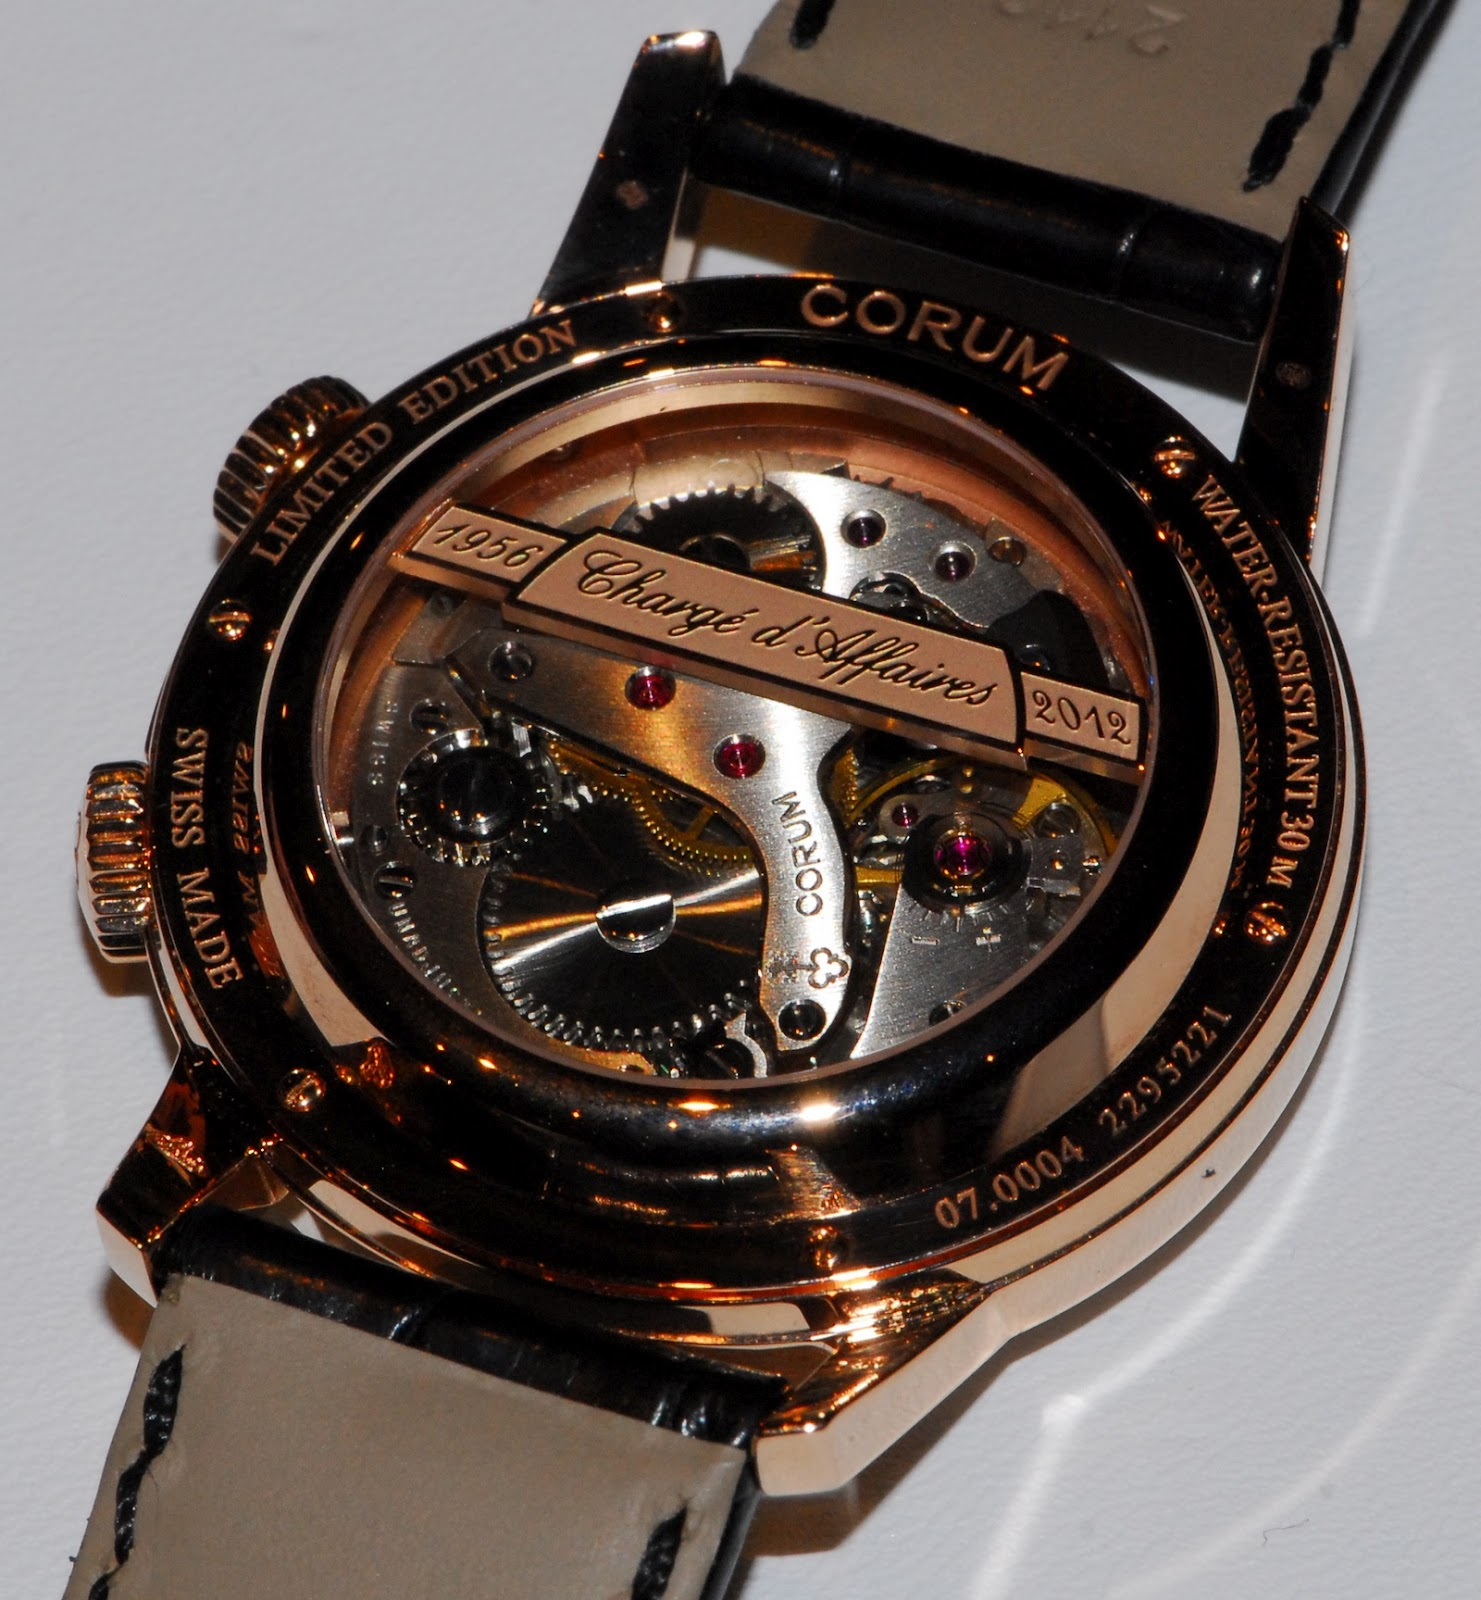 corum - News : Corum Heritage Vintage Chargé d'Affaires Calibre+A+Schild+1475+Corum+Charge+Affaires